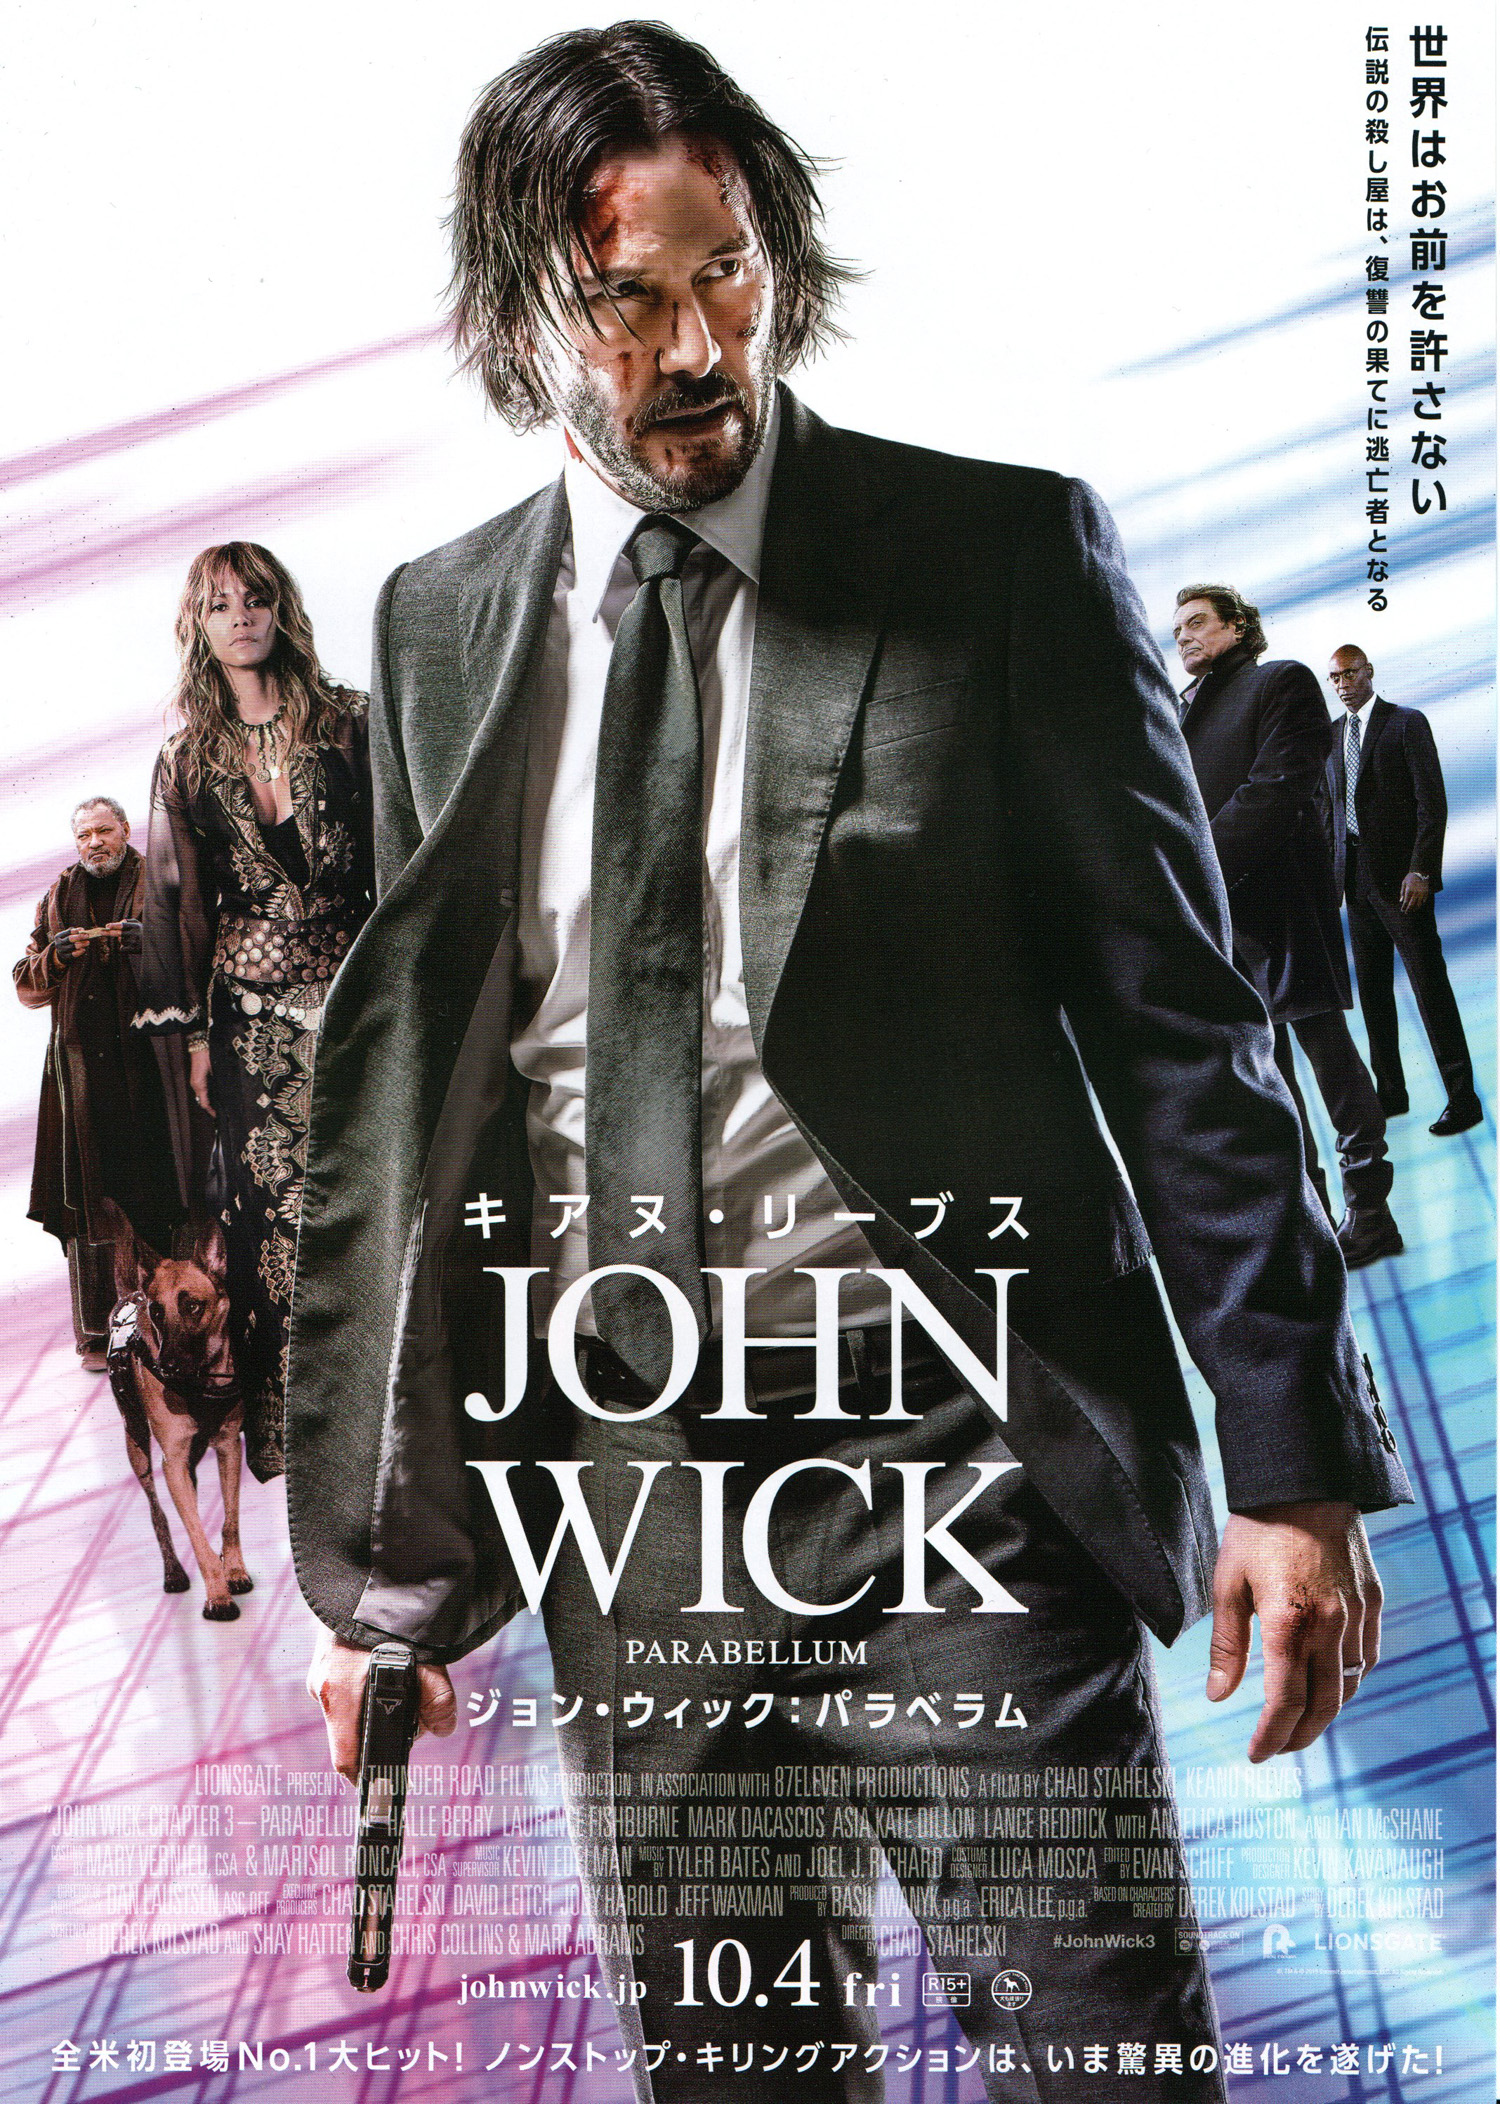 johnwickparabellum-japan_2-1